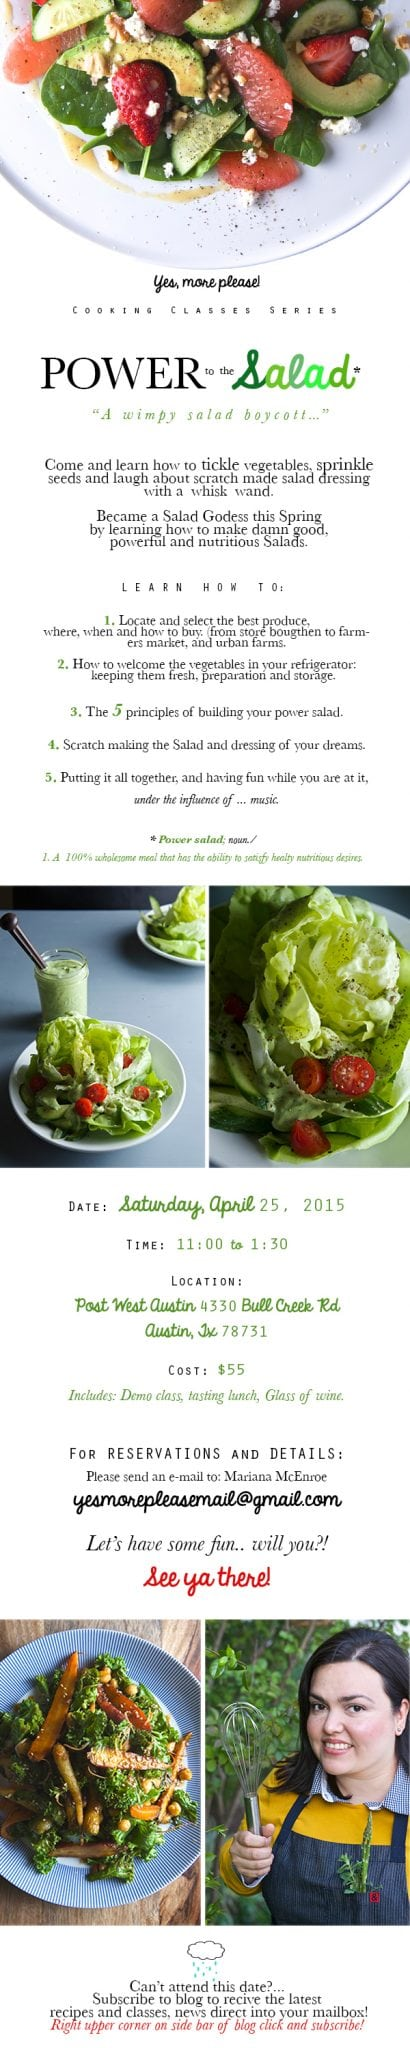 Power-to-the-Salad_Cooking-classes-Yes,-more-please!-Mariana-McEnroe